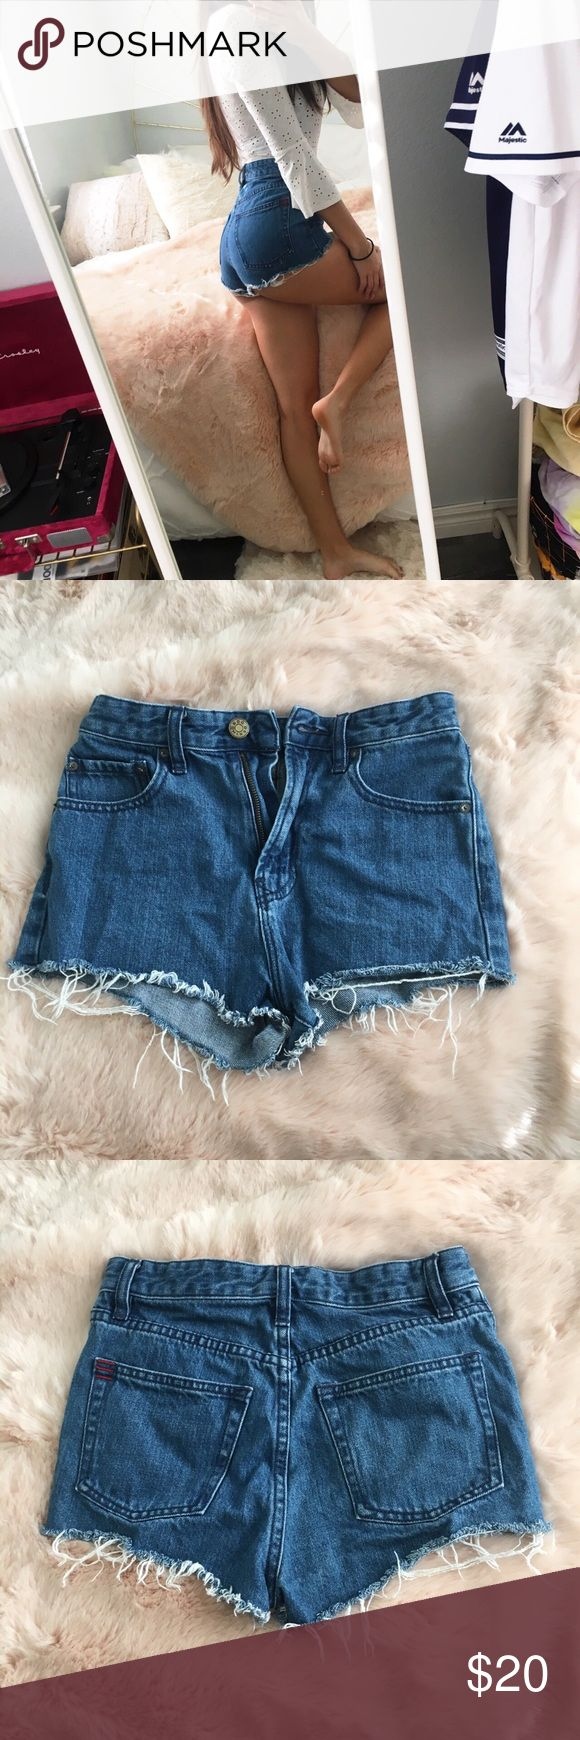 Urban Outfitters Dark Wash Distressed Shorts Urban Outfitters BDG Cheeky Super High Rise Denim Shorts Medium wash jean shorts Size 25W  In great condition, only worn a few times Fabric is not stretchy, fits true to size Urban Outfitters Shorts Jean Shorts